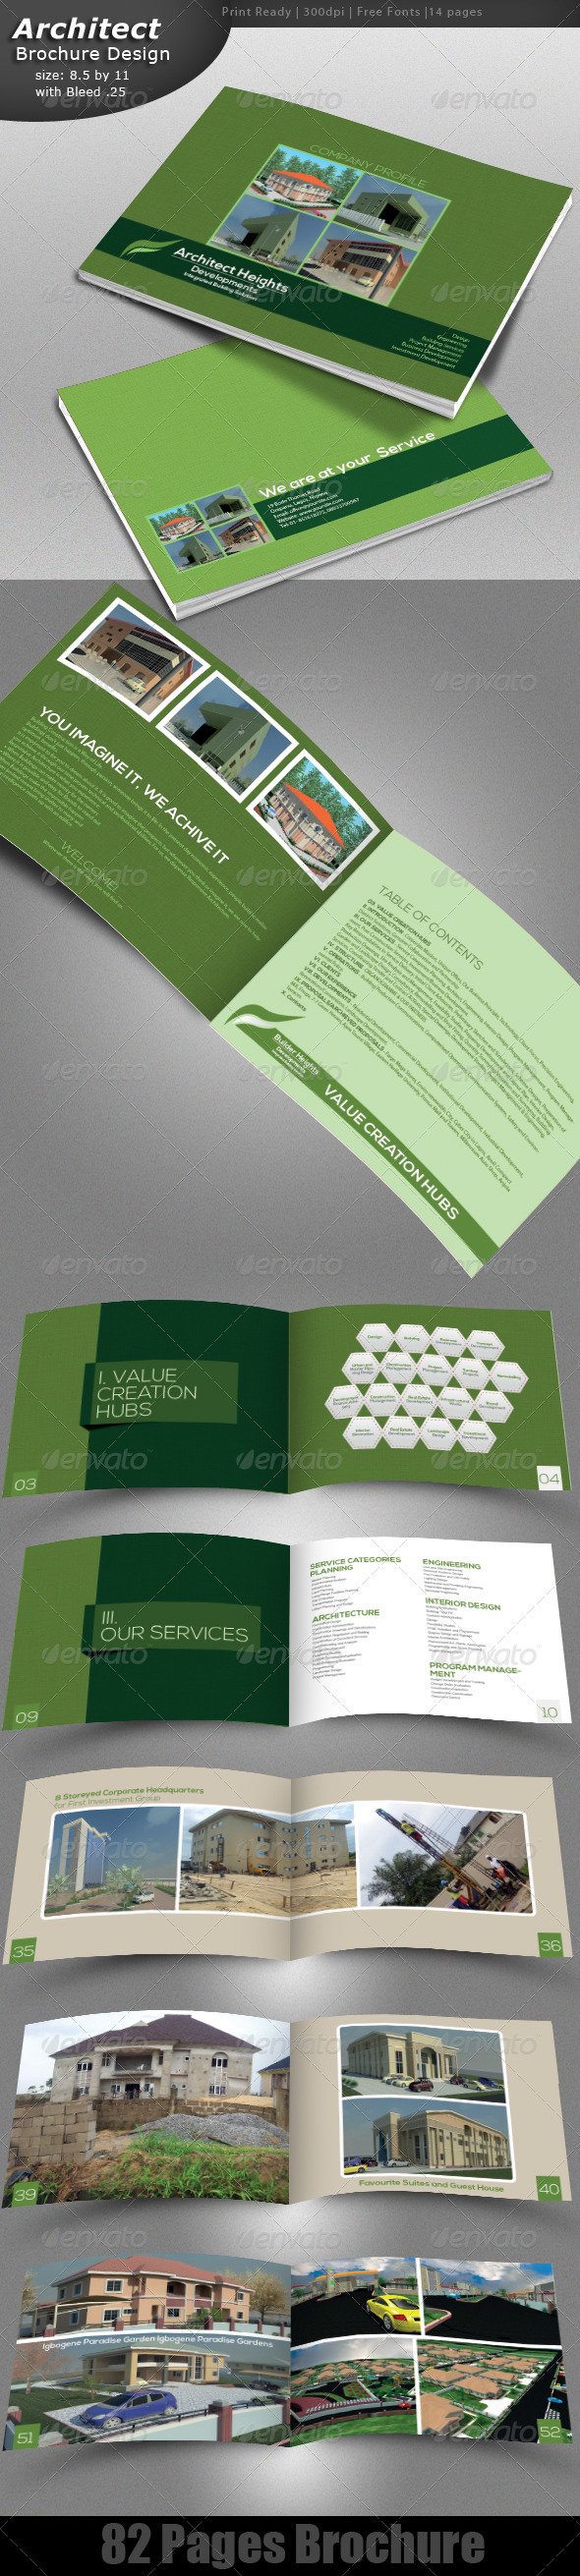 GraphicRiver Architecture Brochure Design 4923736